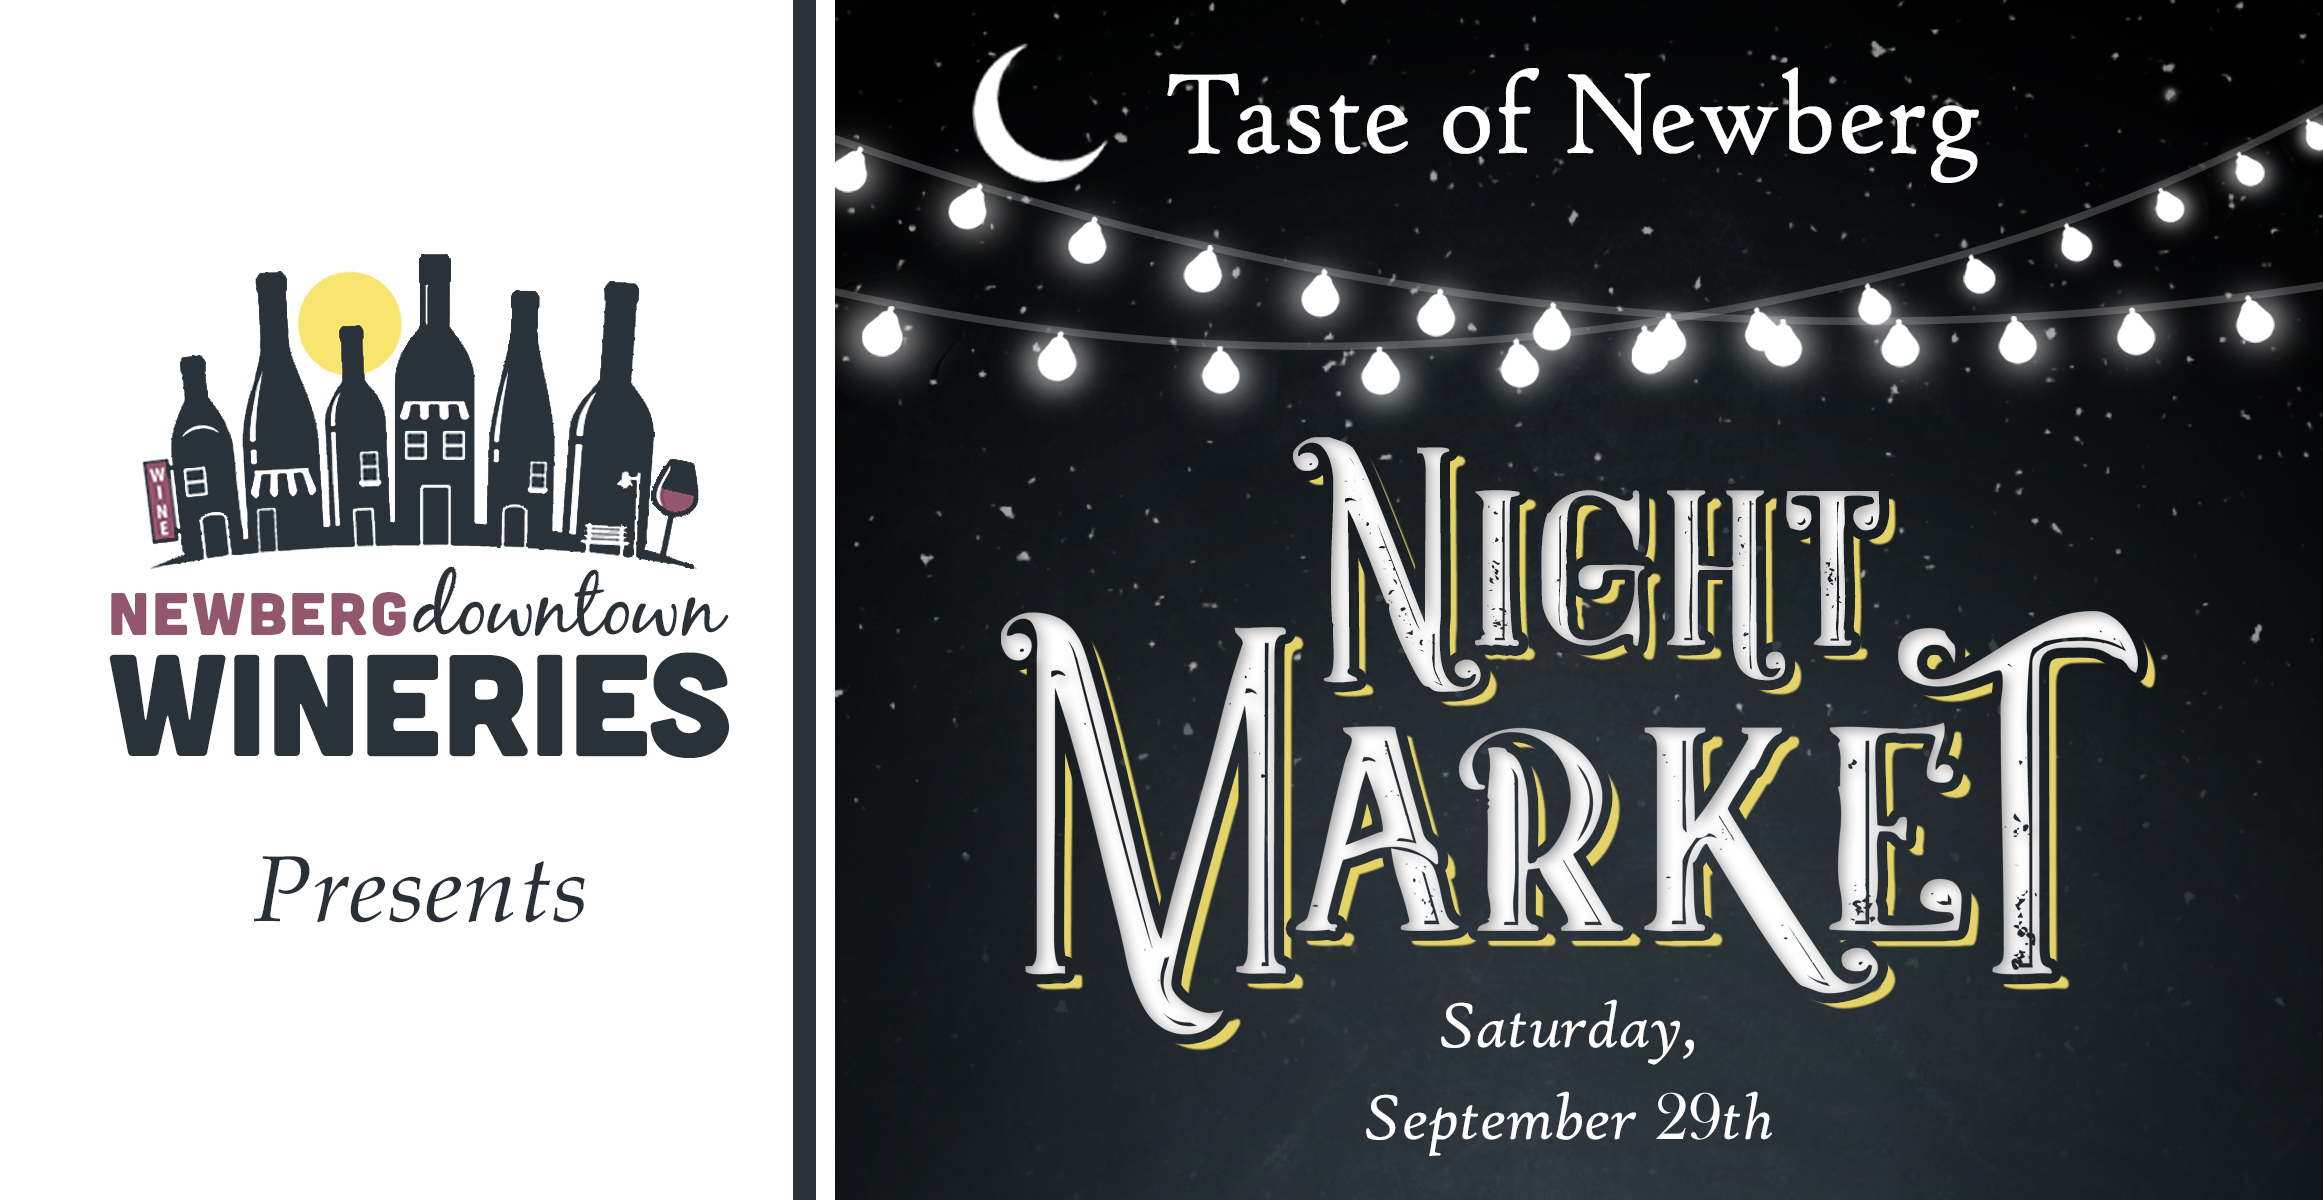 NDW Taste of Newberg - Night Market - Banner.jpg